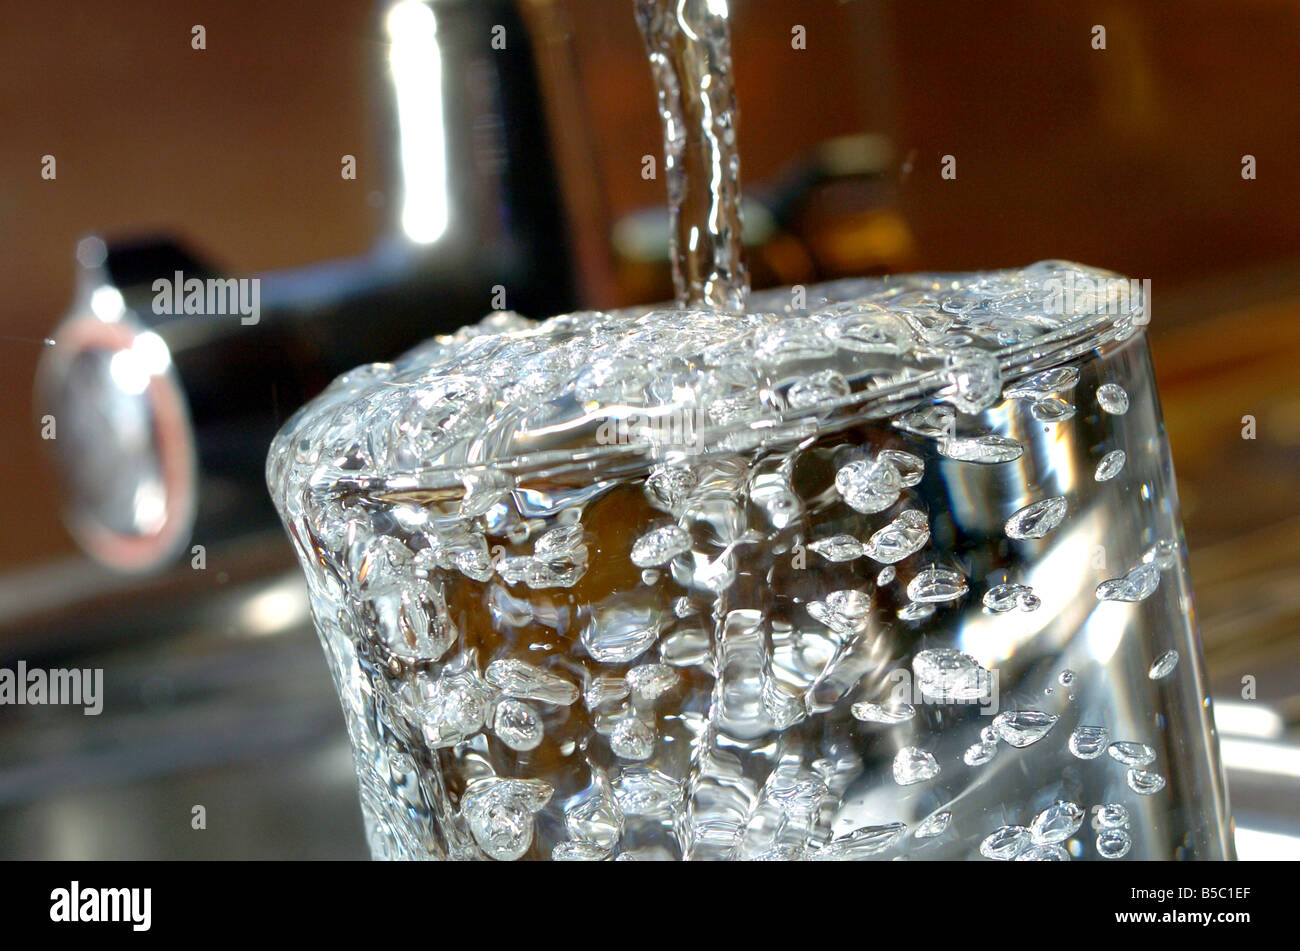 https://c8.alamy.com/comp/B5C1EF/water-flowing-into-a-glass-from-tap-water-tap-flow-fill-bubble-bubbles-B5C1EF.jpg